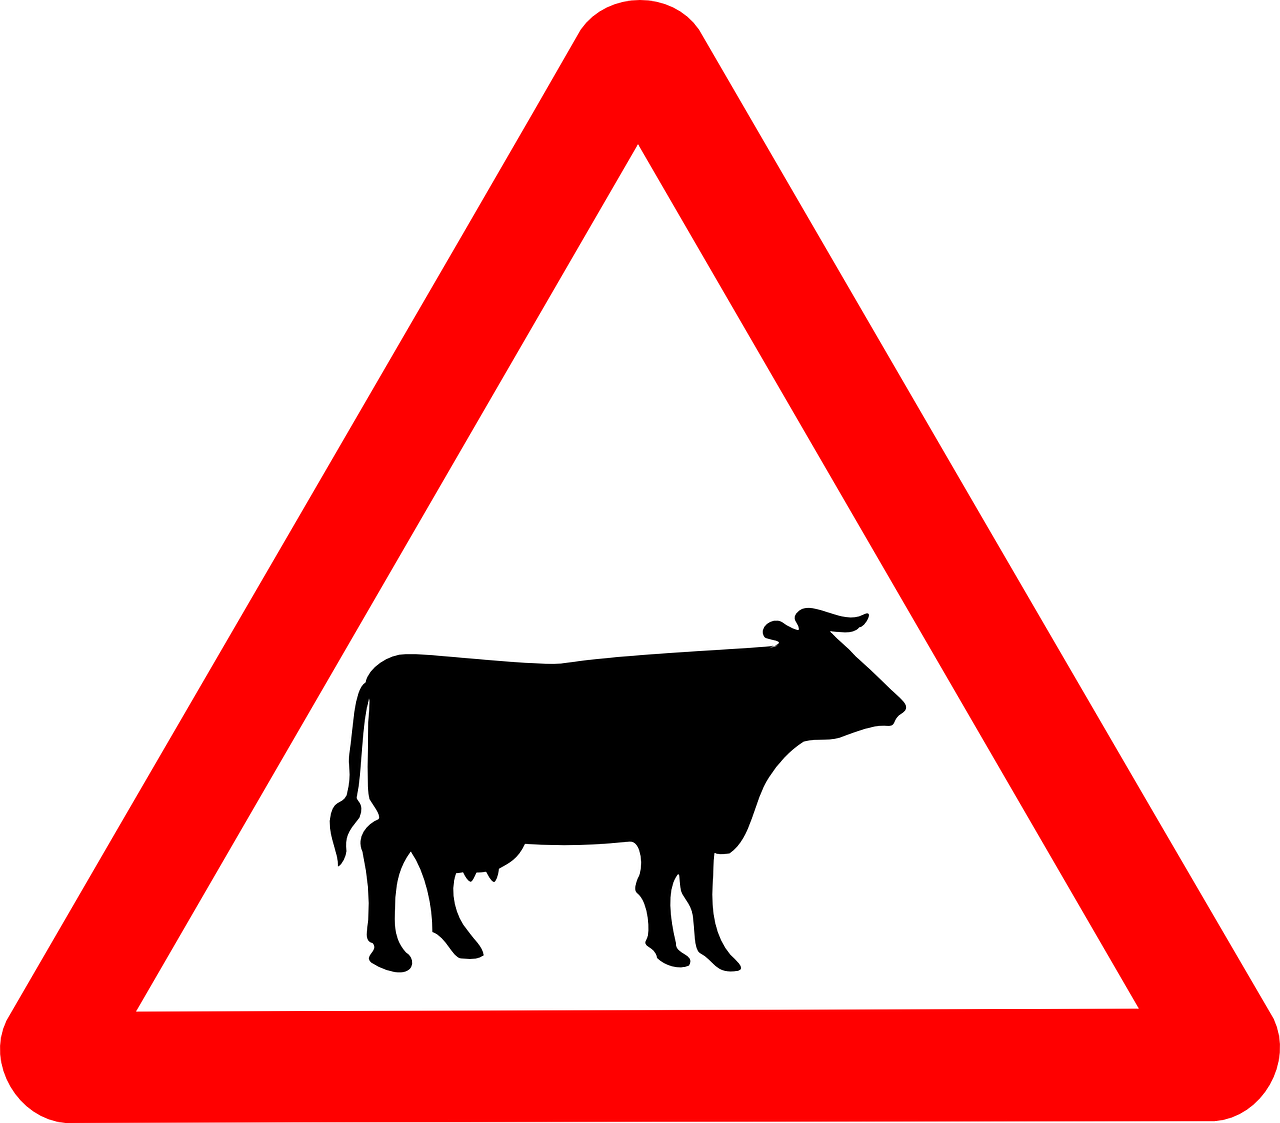 cattle_crossing